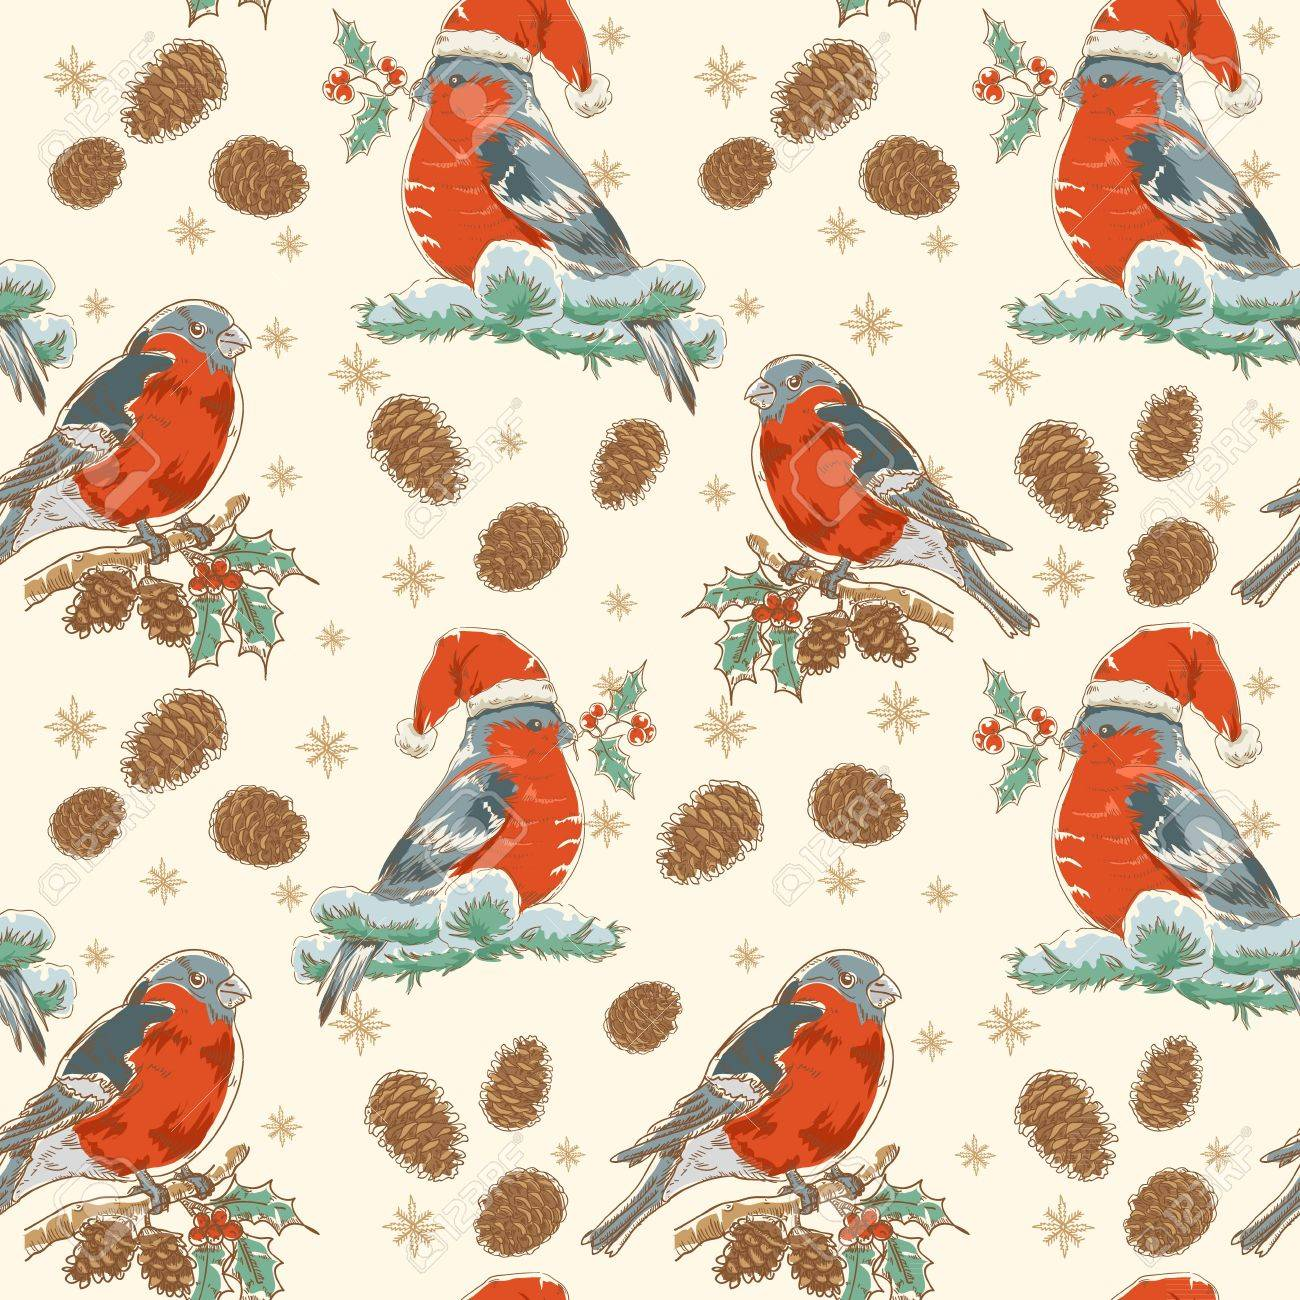 Cute Christmas hand drawn seamless retro background with bullfinch bird with red breast sitting on a tree with holly berries and fir cones Stock Vector - 16234168